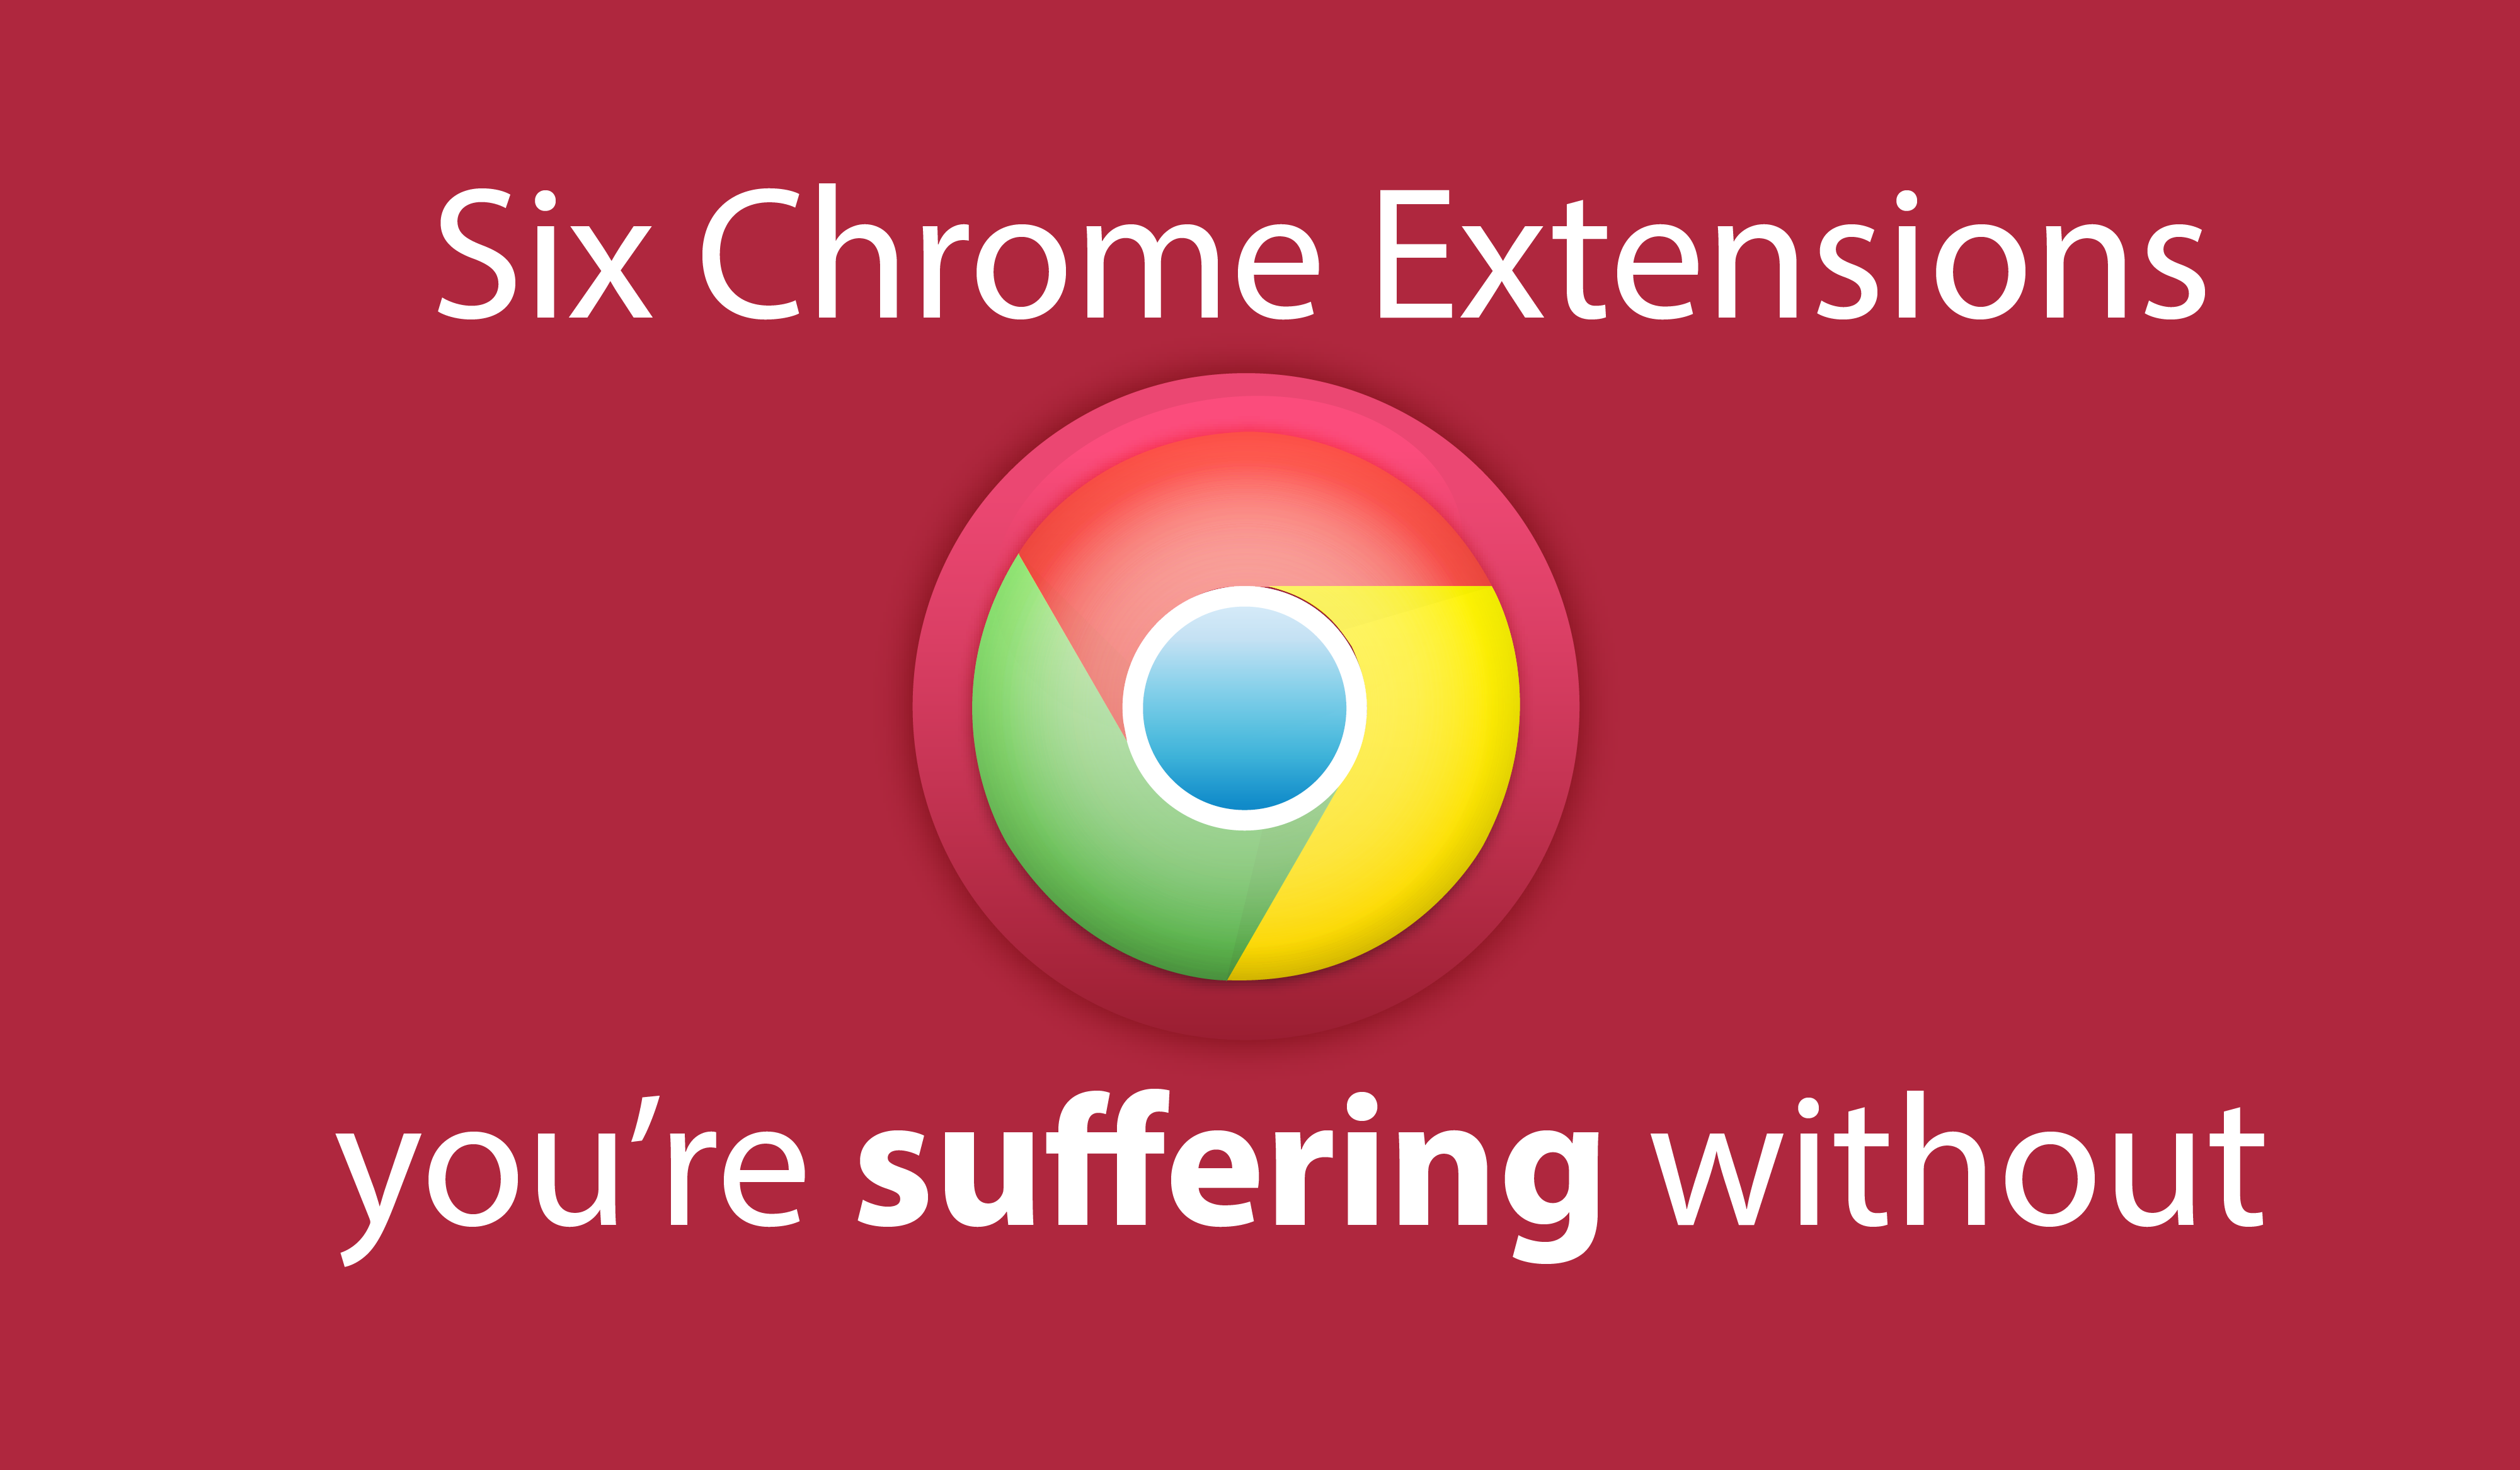 Six Chrome extensions you're suffering without.